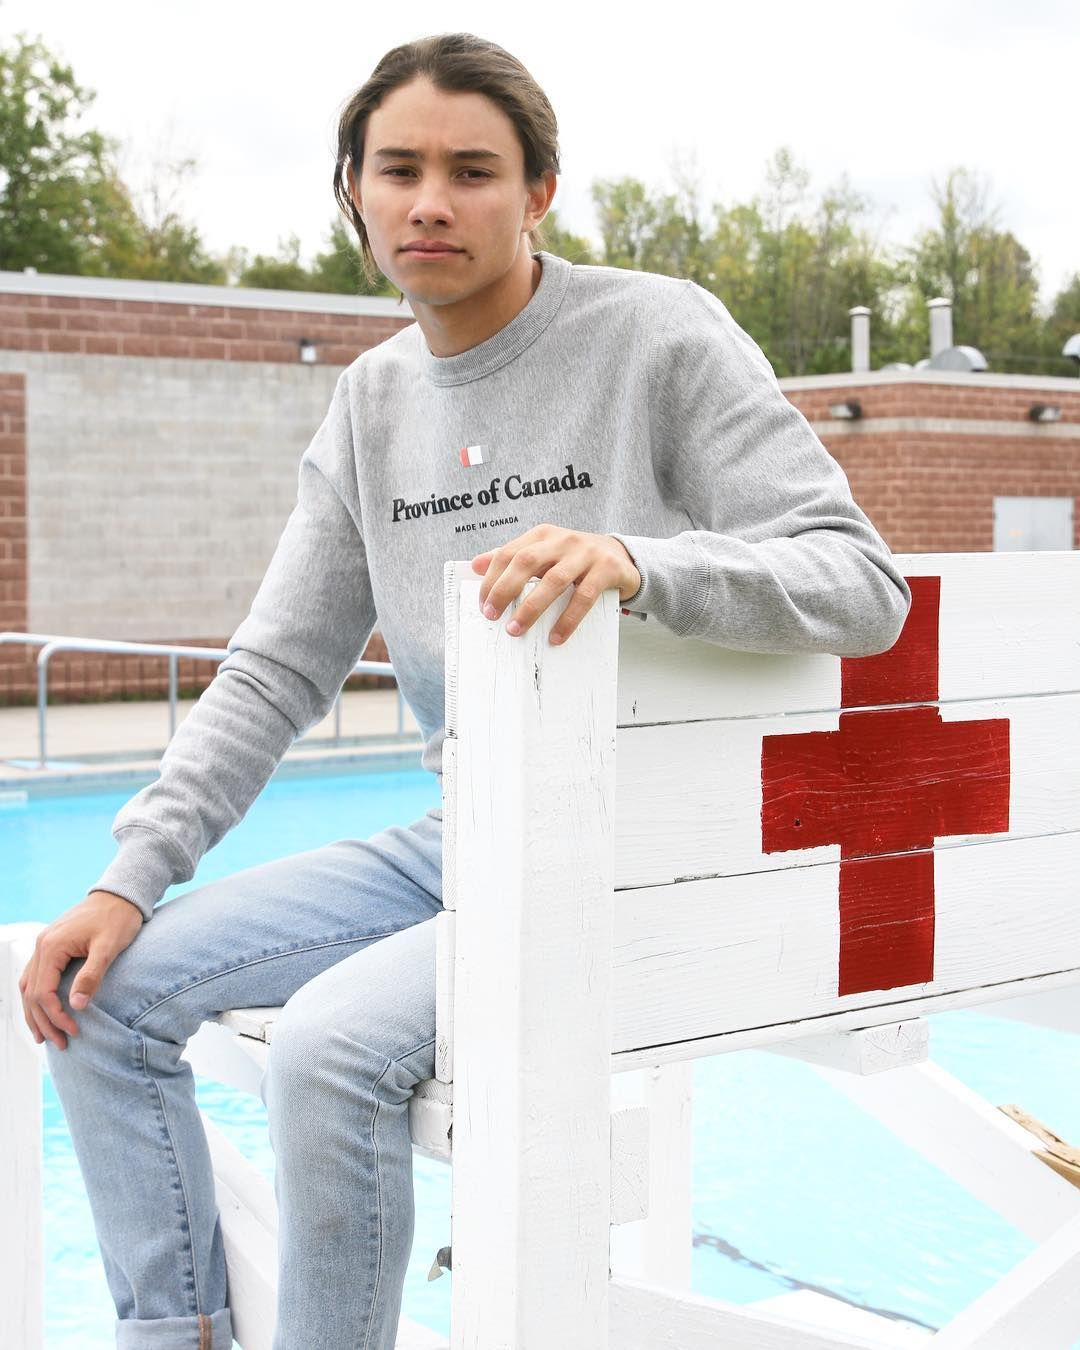 Made in Canada by Province of Canada Lifeguard, Province